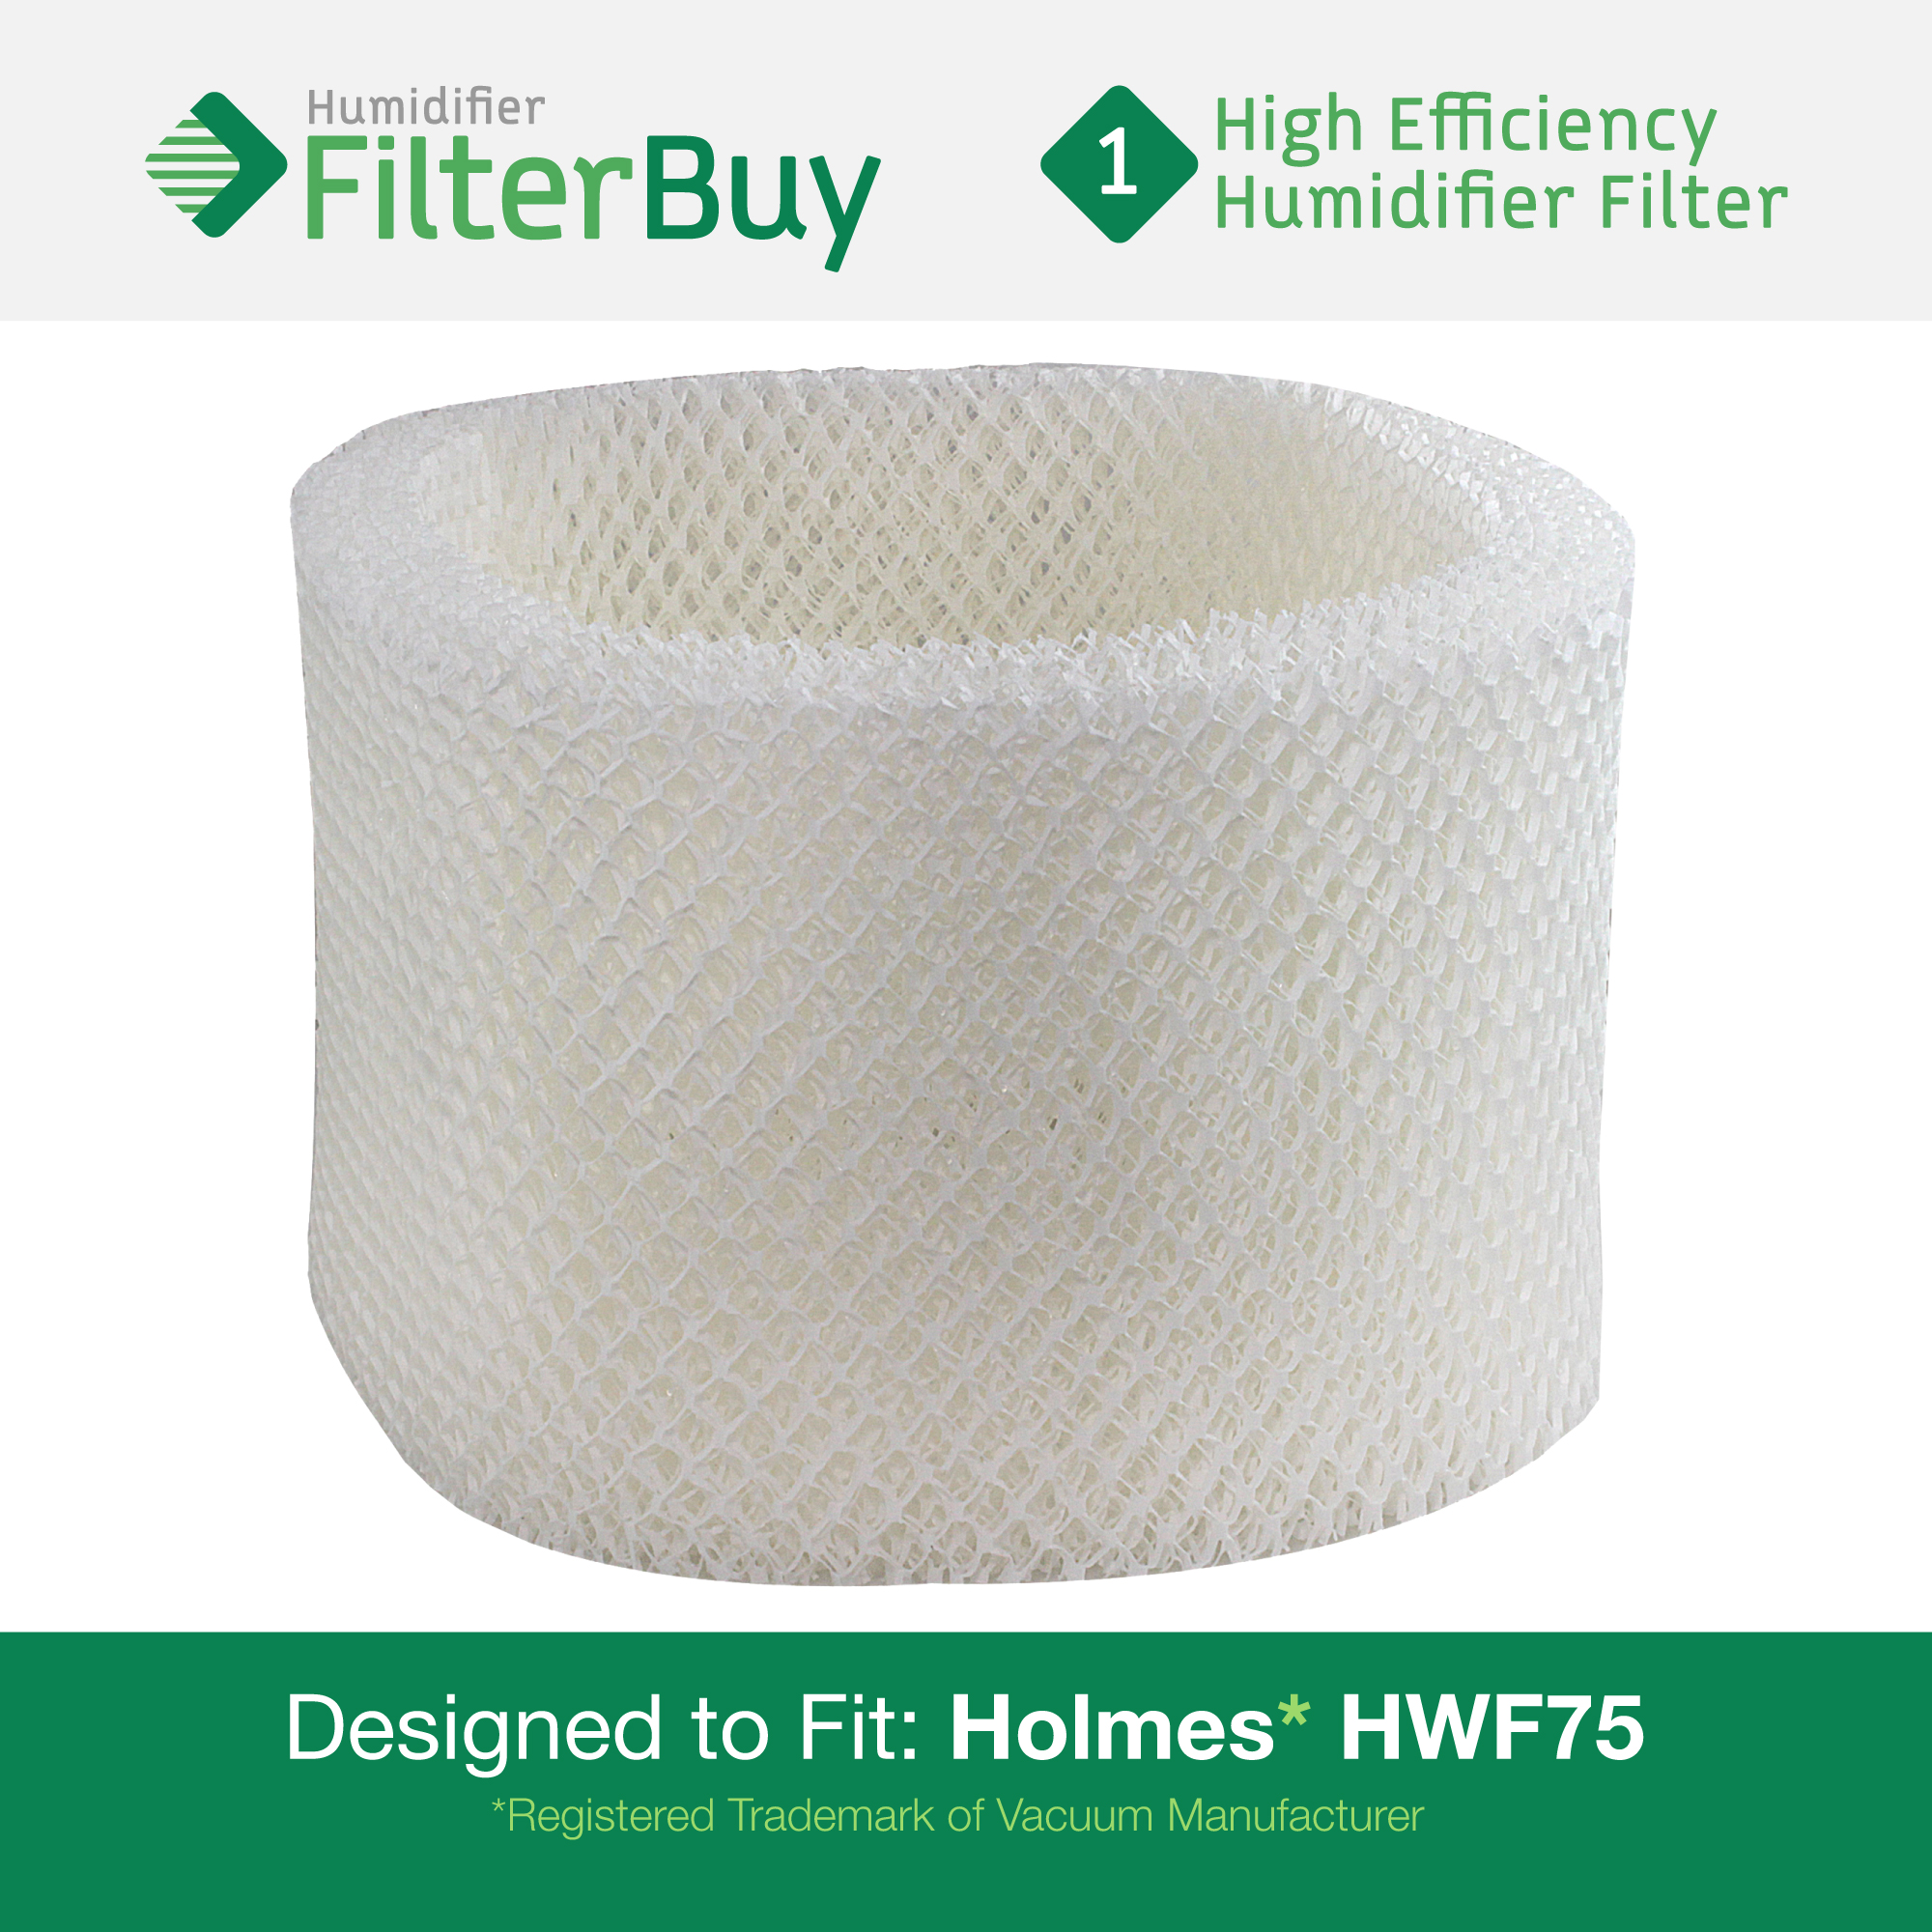 Touch Point Sunbeam Humidifier Replacement Filter FilterBuy.com #088150